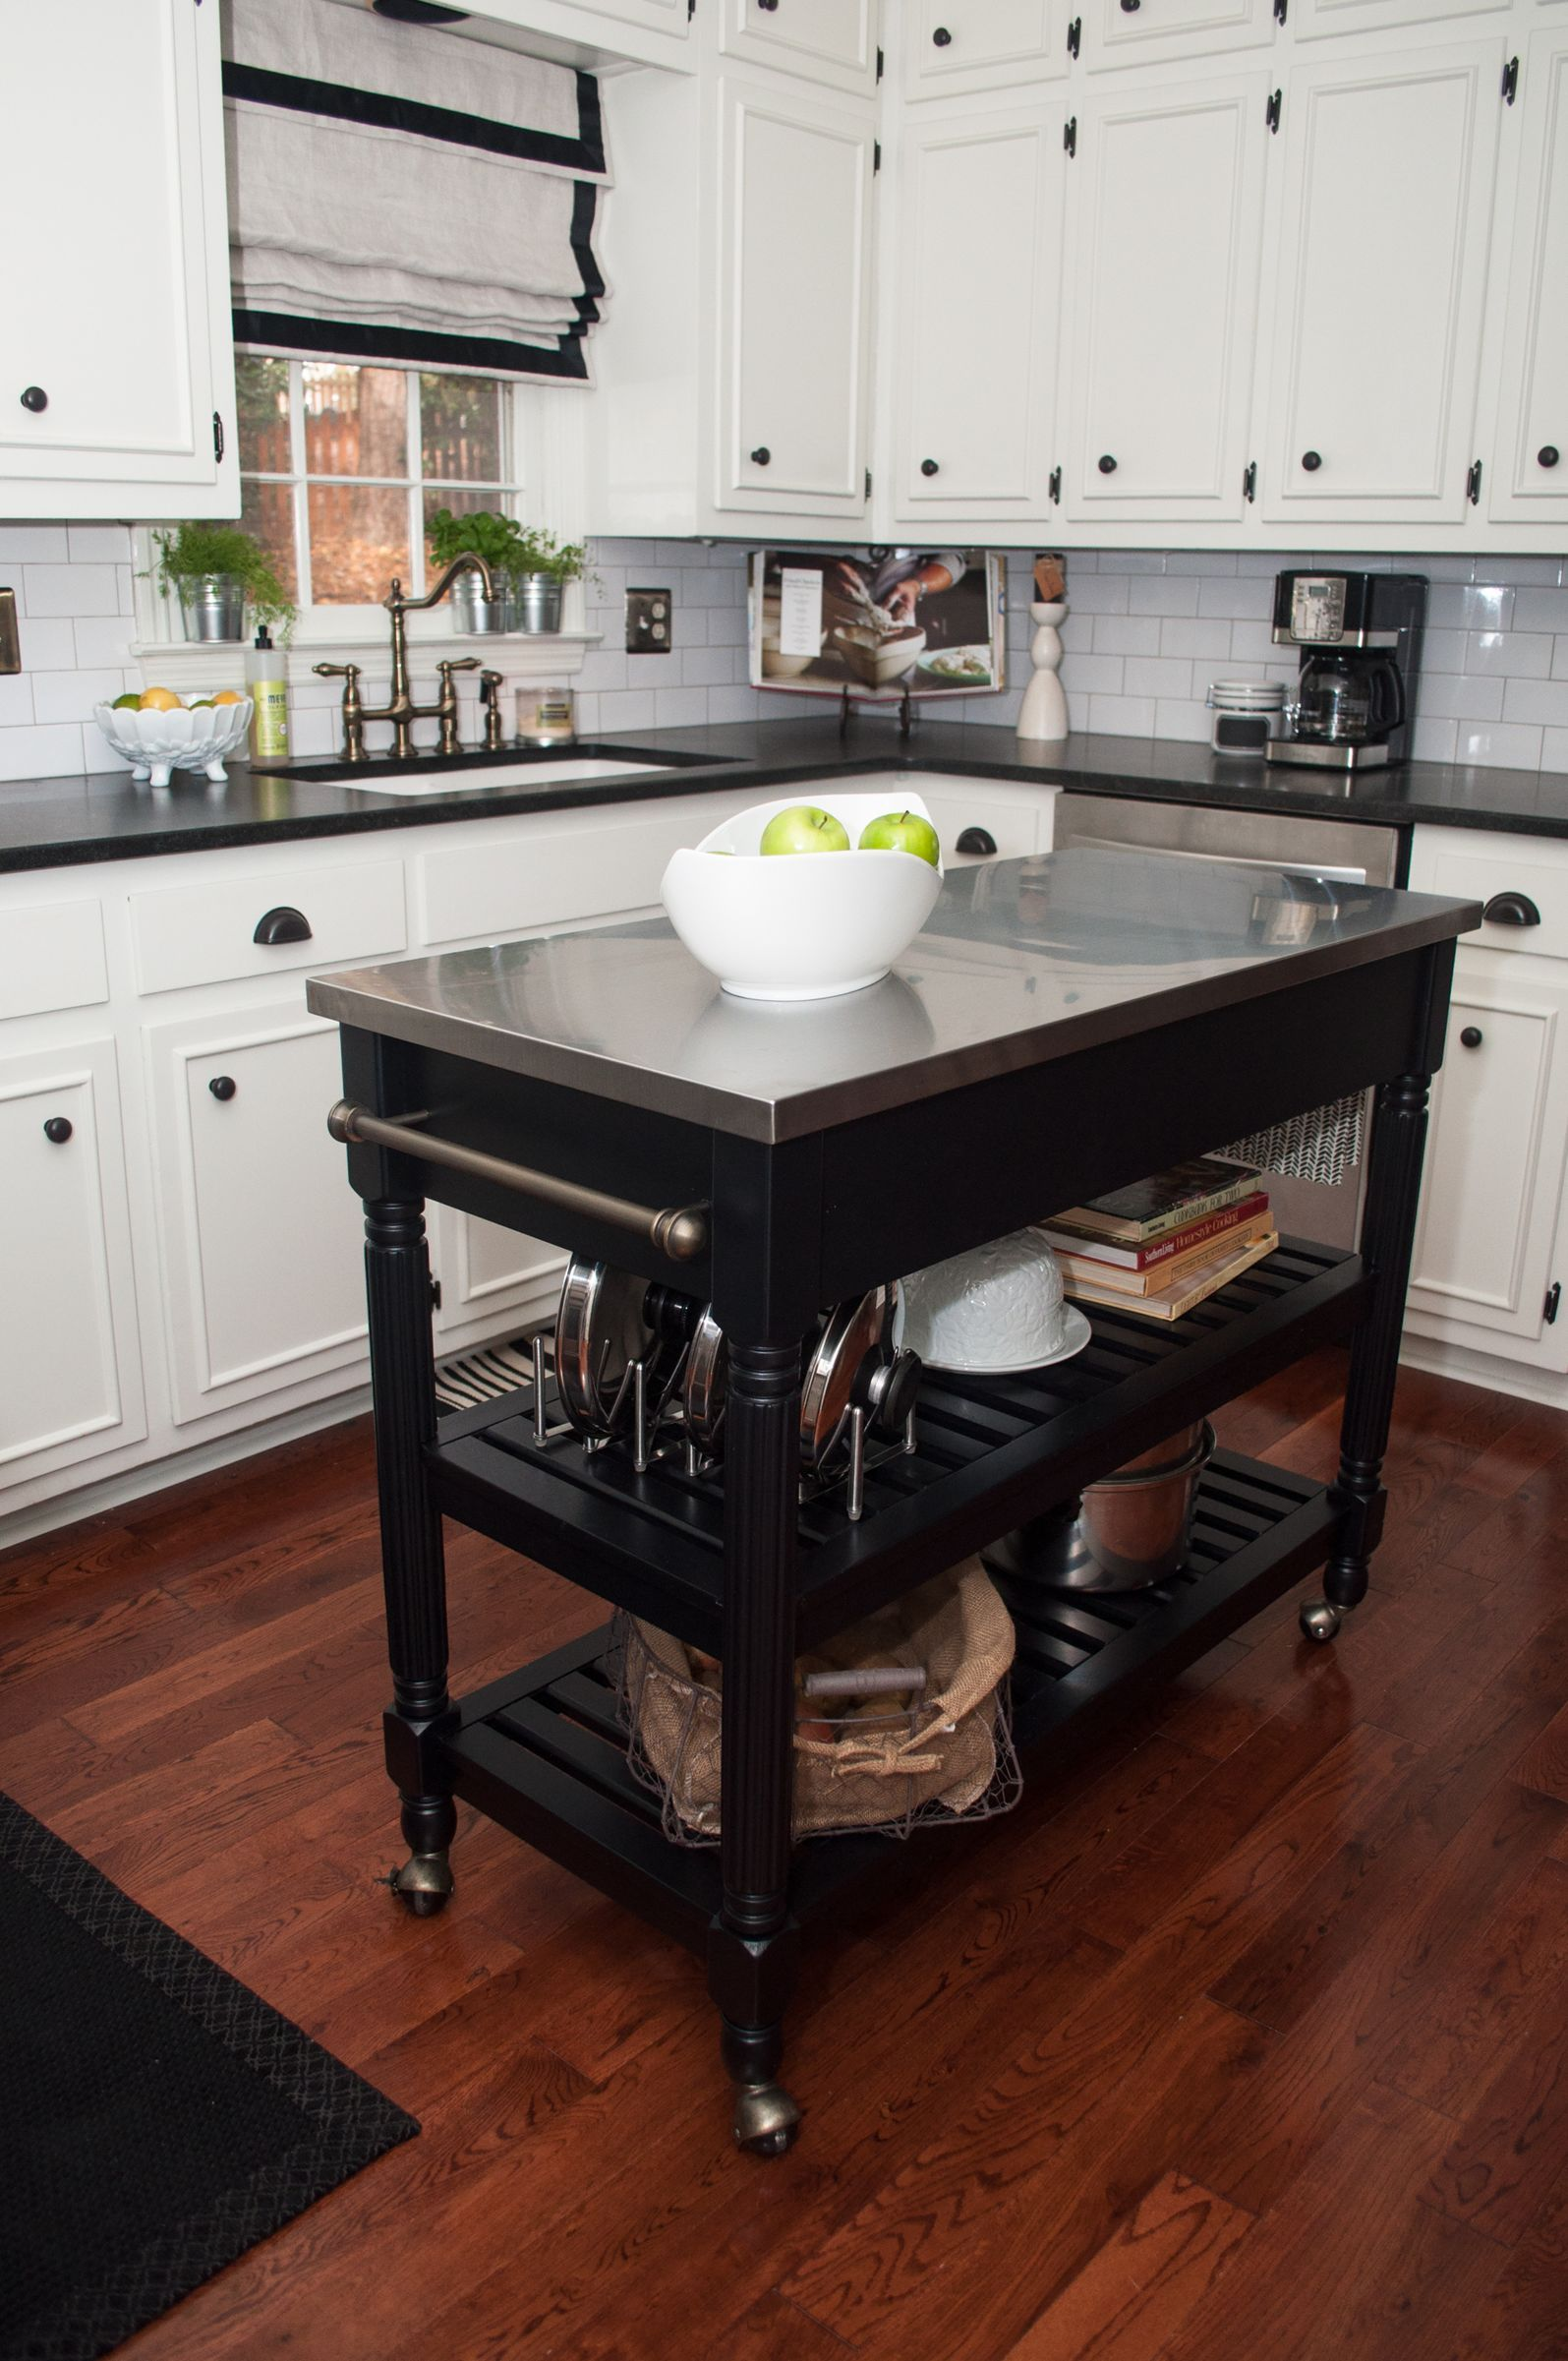 kitchen portable island honest keen 60 types of small islands carts on wheels 2019 gift smaller white with dark good use high cabinets